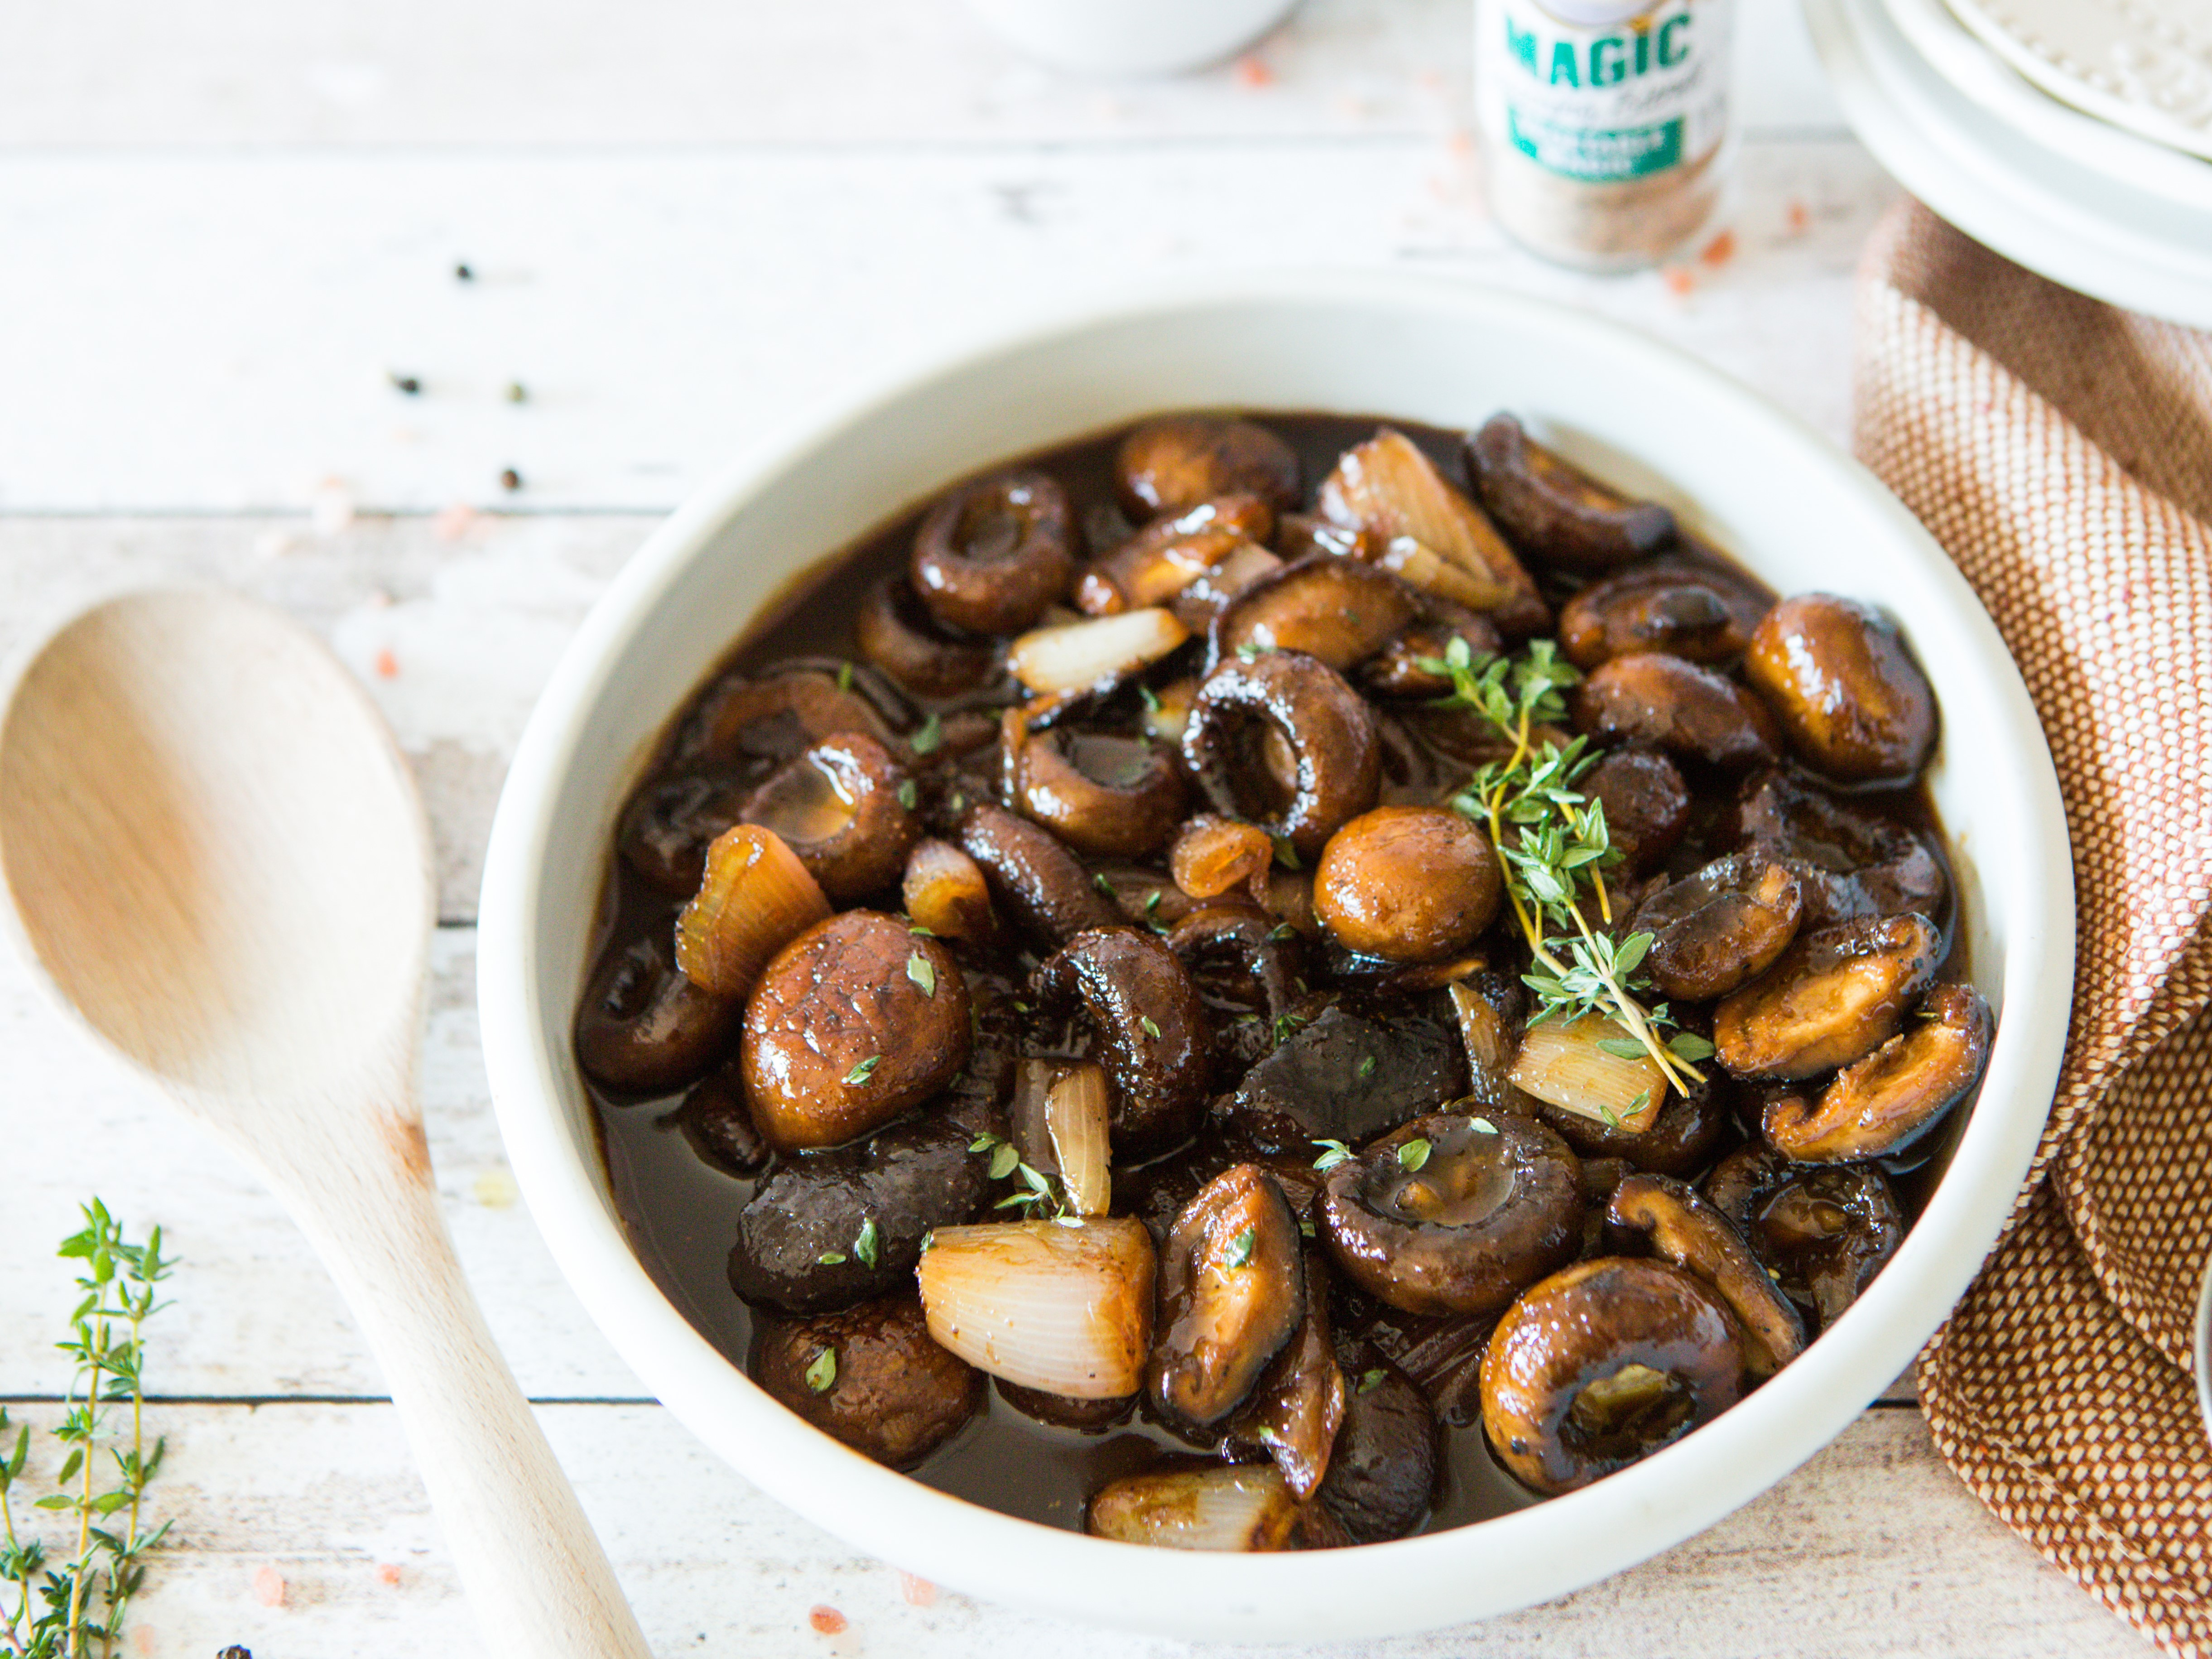 Balsamic Mushrooms with Shallots & Thyme